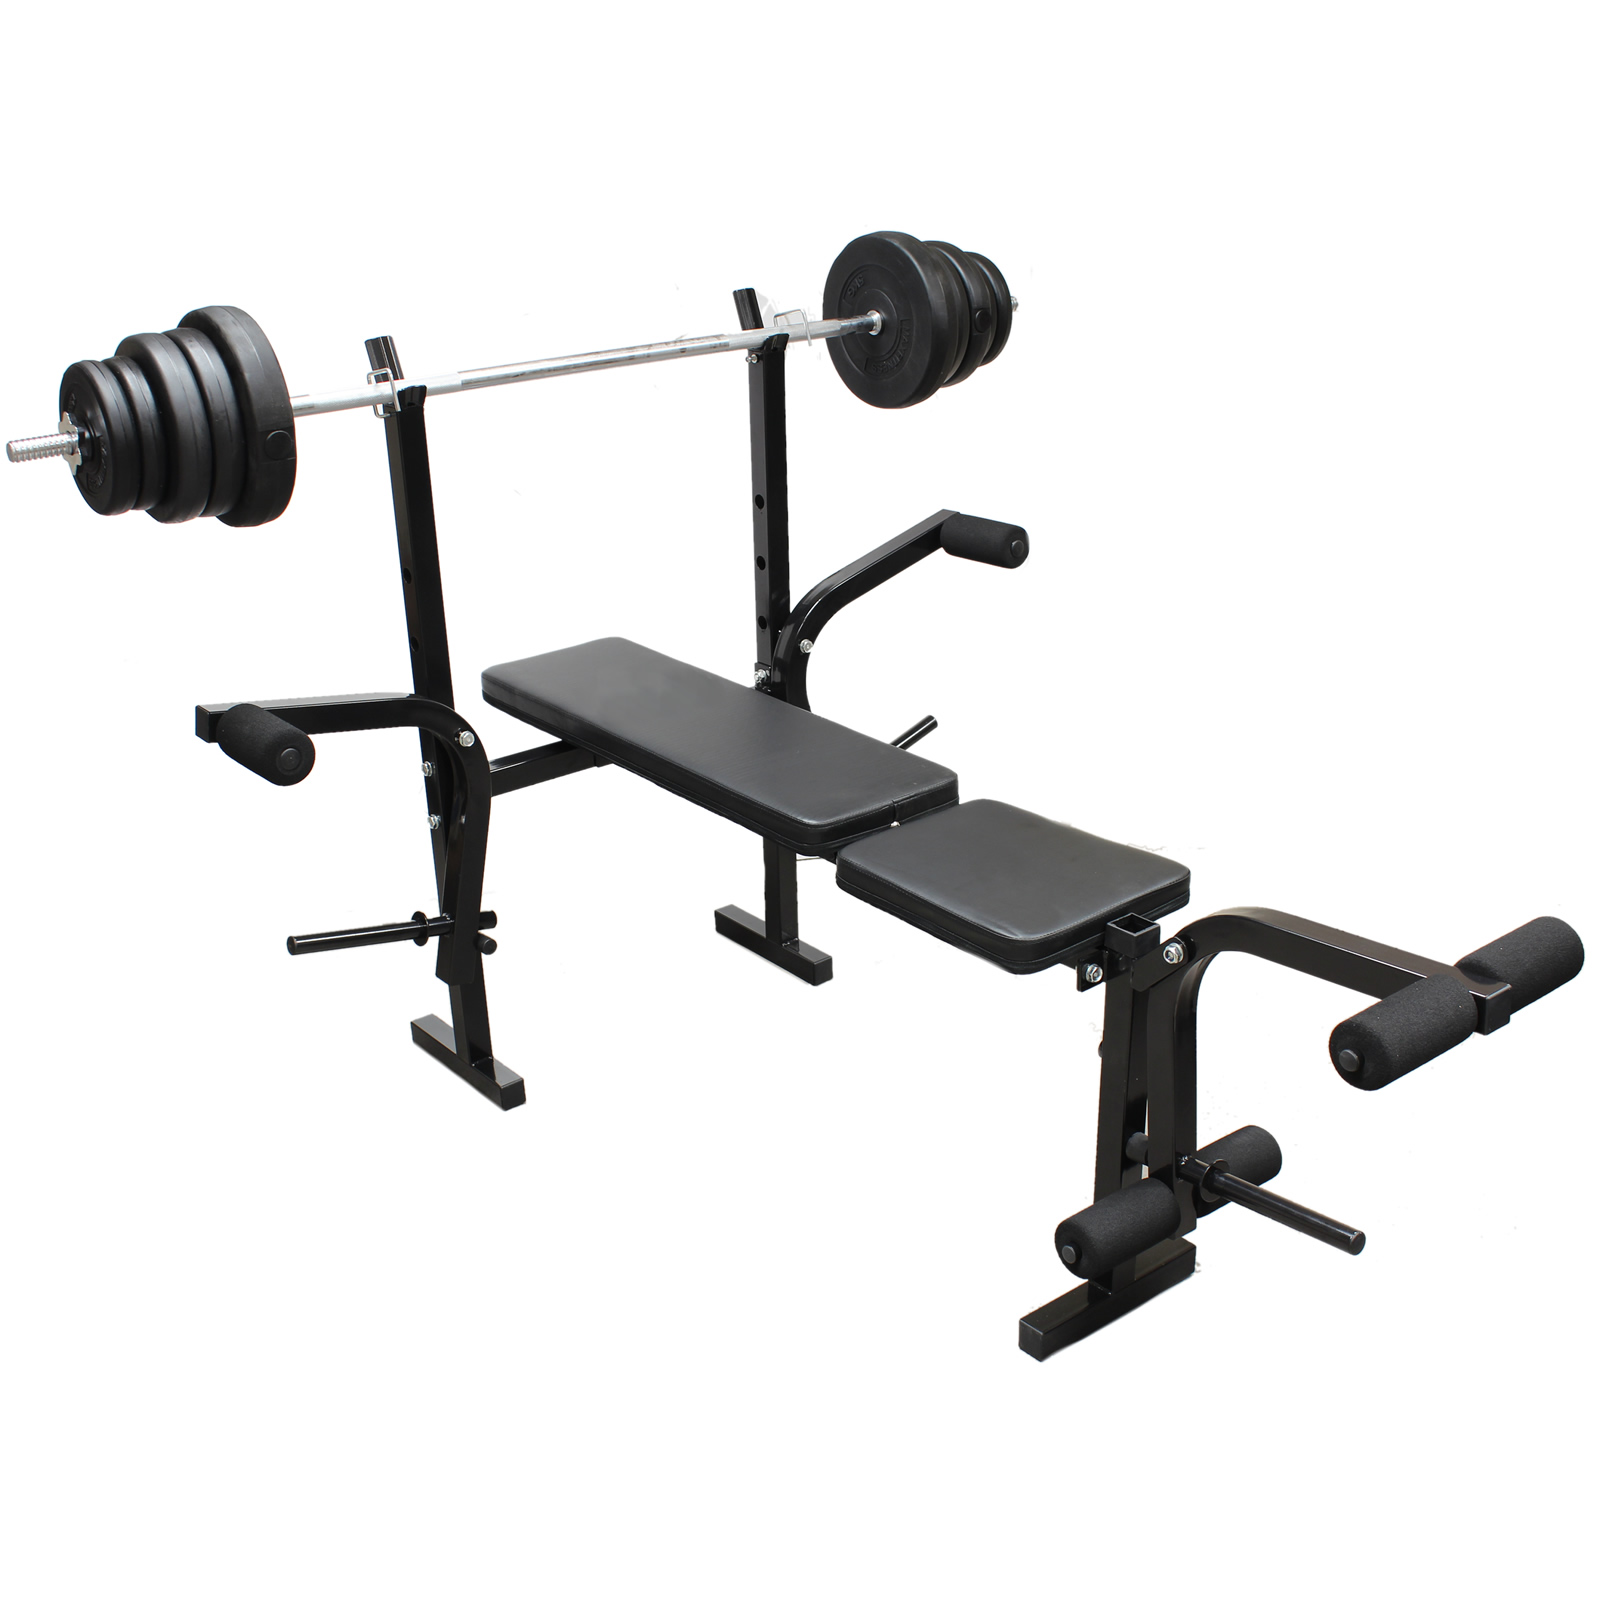 Home Exercise Equipment For Legs: Weights Bench Multi Home Gym Equipment Dumbell Workout ABS